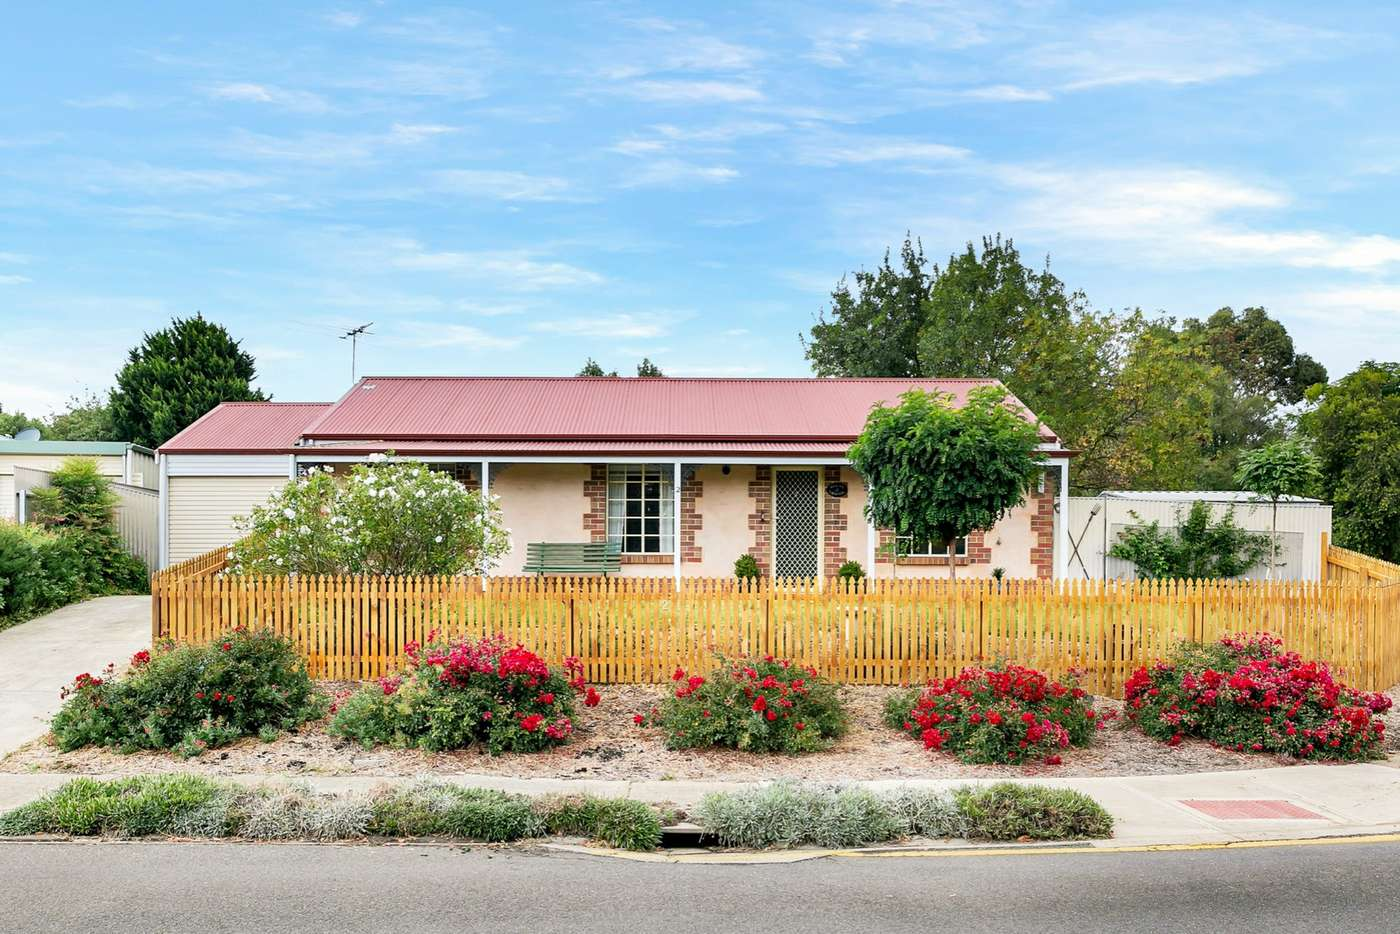 Main view of Homely house listing, 2 Ibis Court, Mount Barker SA 5251